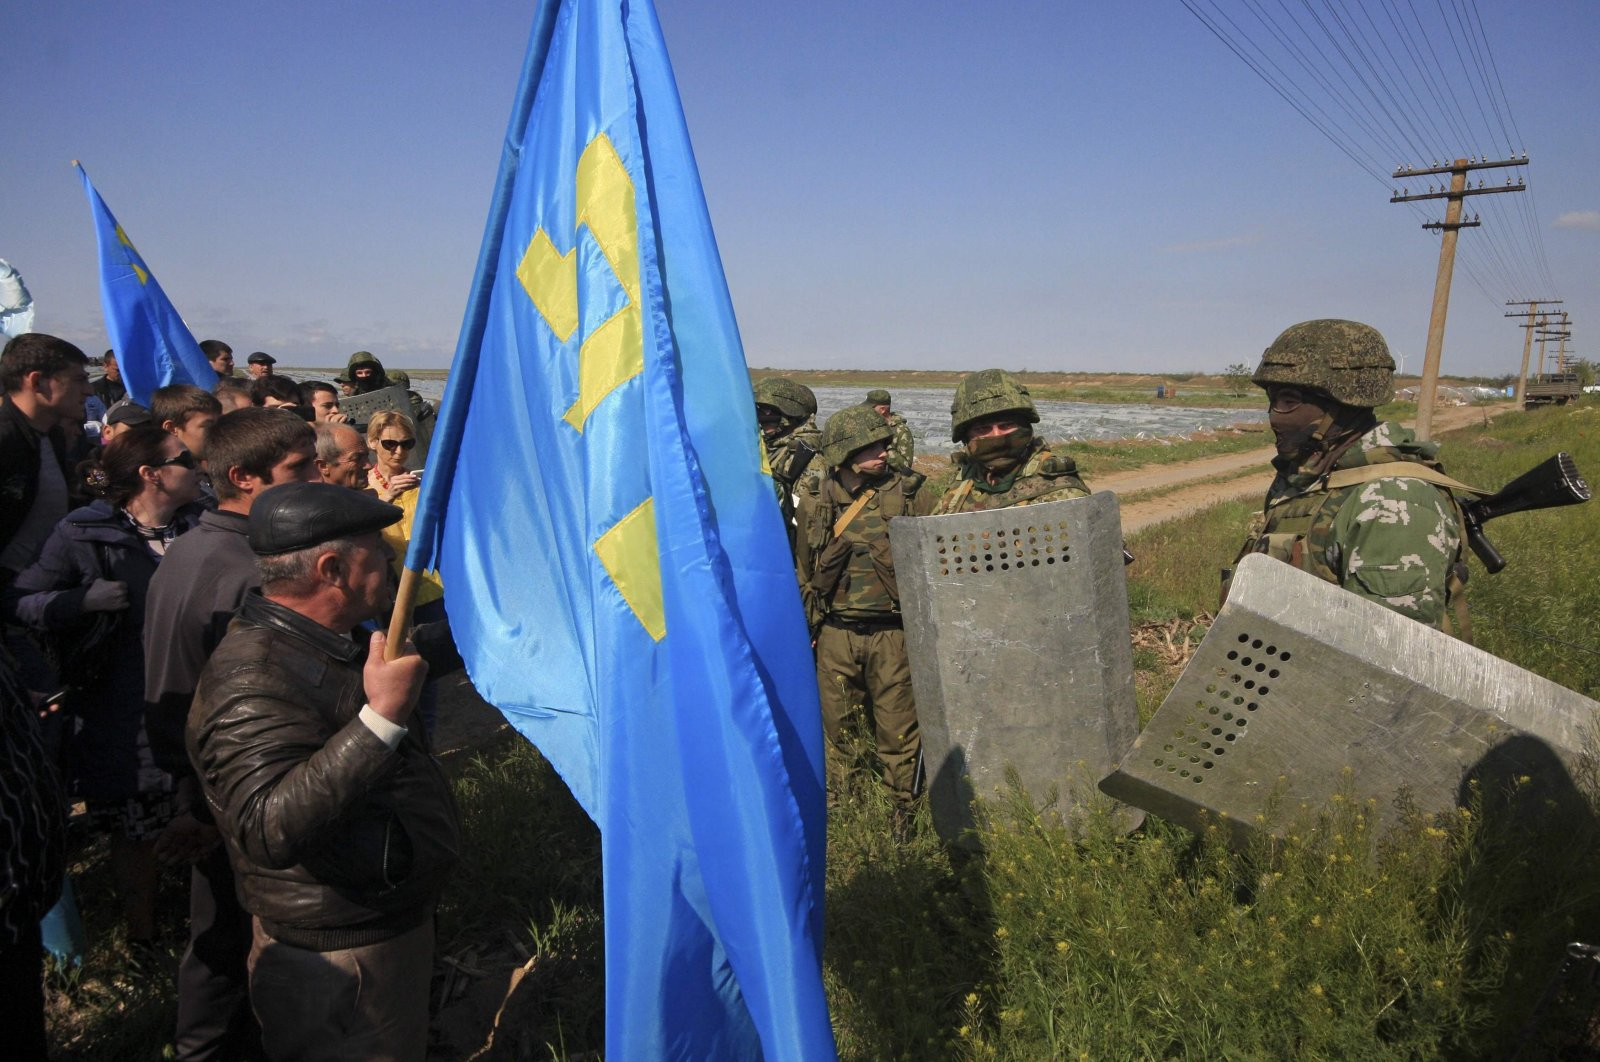 Russian servicepeople attempt to block the way for Crimean Tatars crossing a checkpoint connecting Crimea and the Kherson region near Armyansk, Crimea, May 3, 2014. (Reuters Photo)